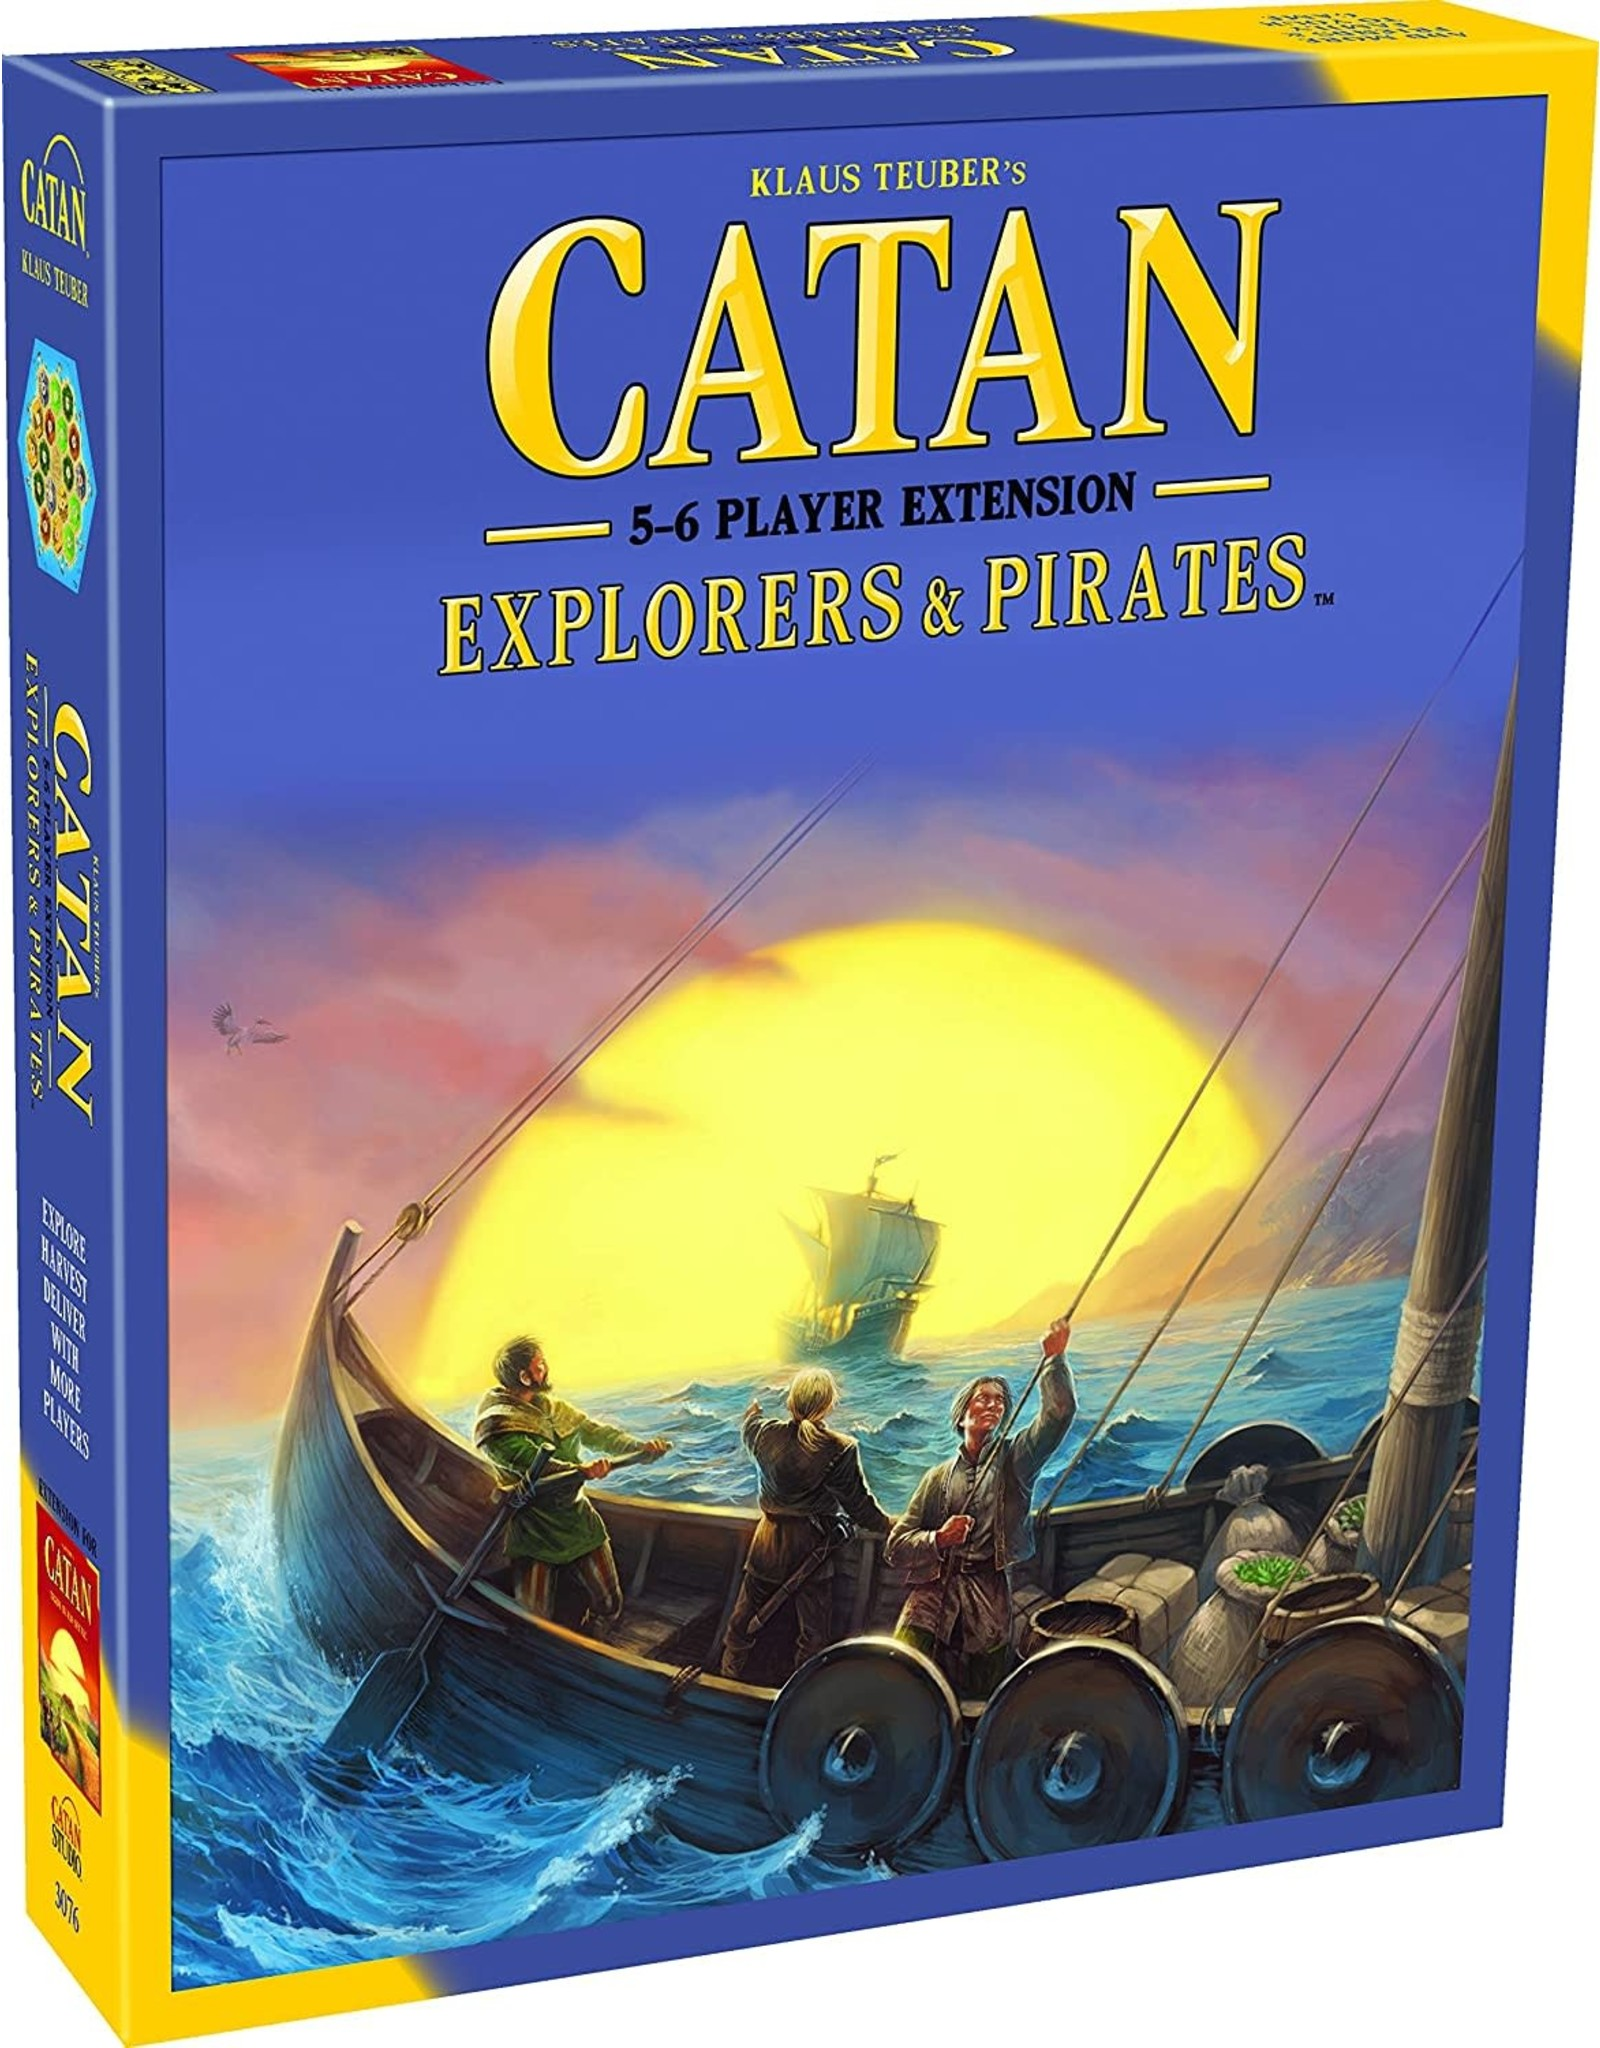 Catan Studio Catan Explorers & Pirates 5 to 6 Player Extension